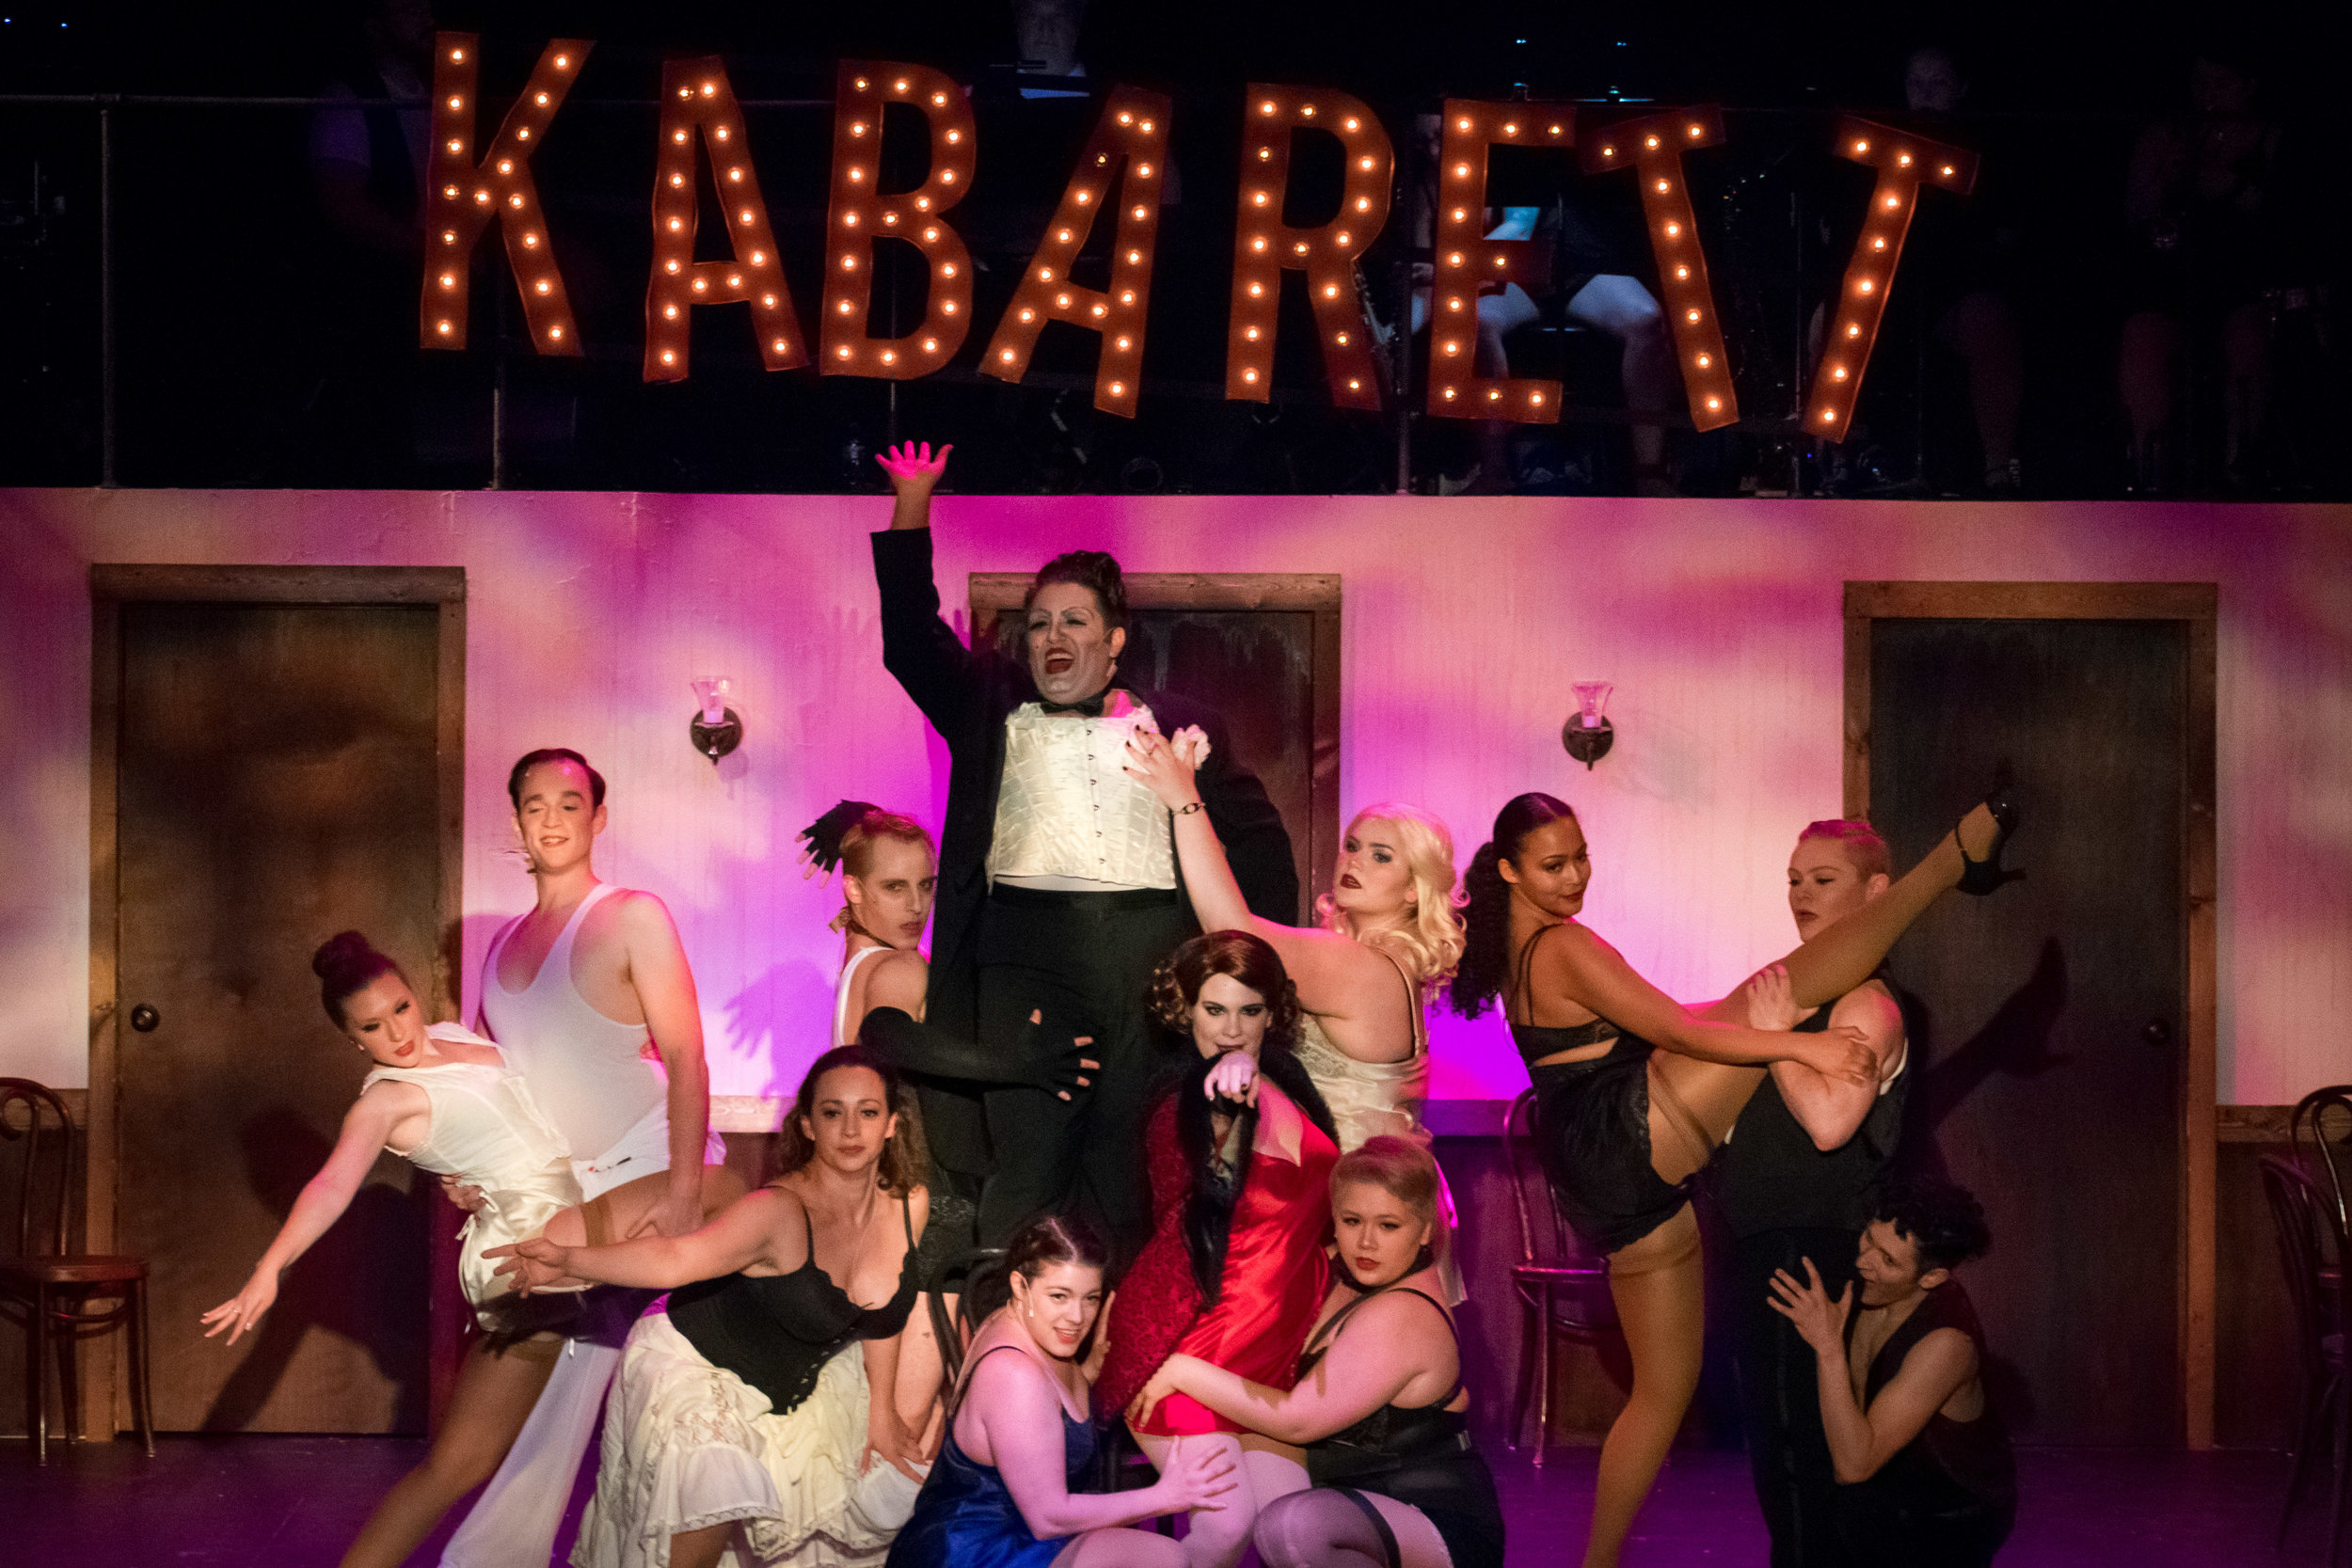 The Kit Kat Dancers of Cabaret at Silhouette Stages